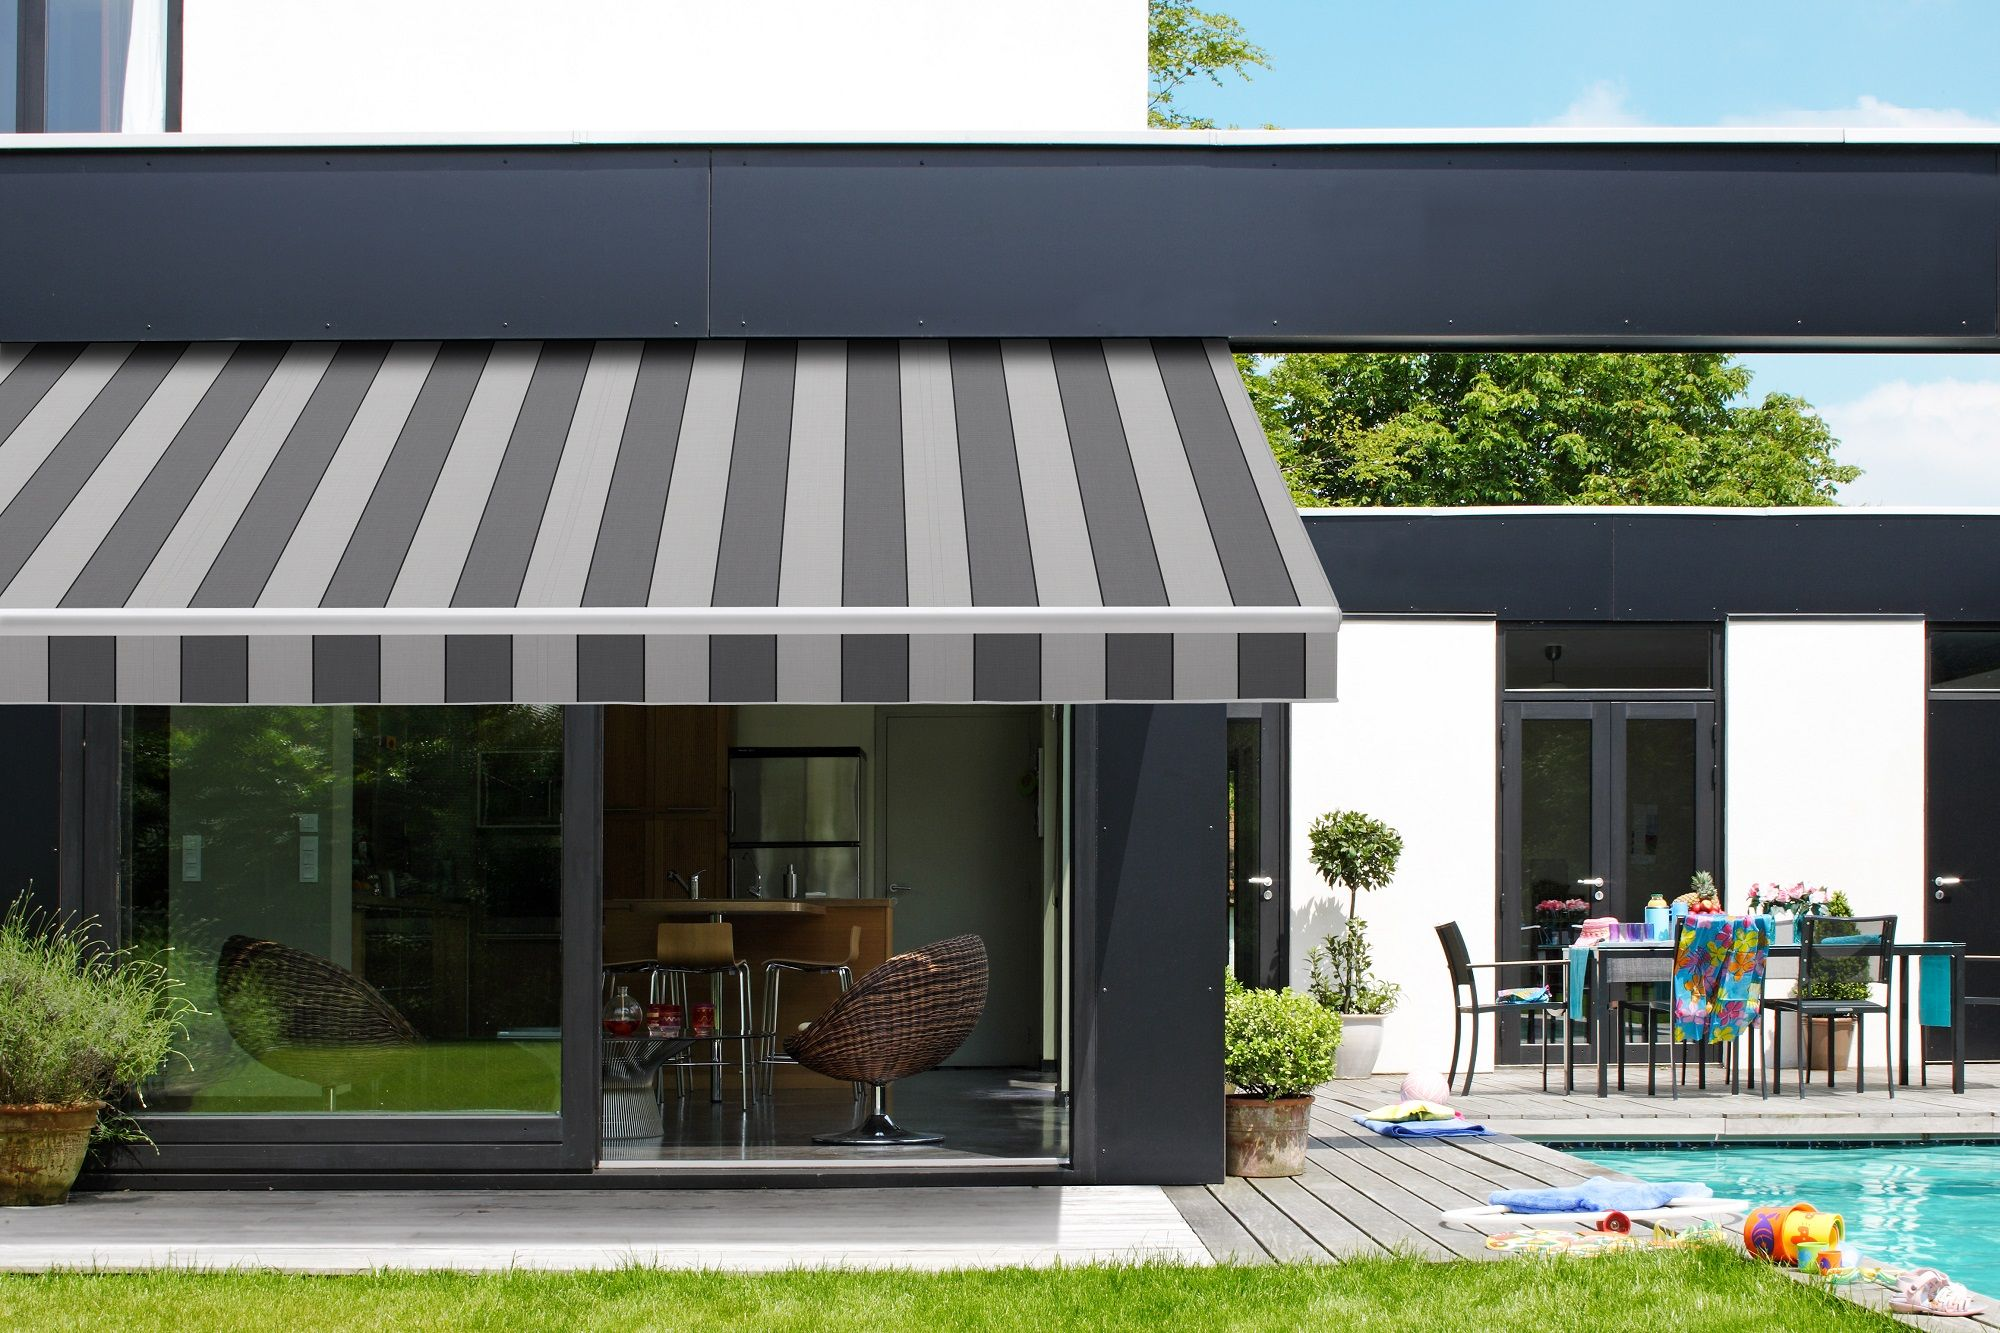 Retractable Folding Lateral Arm Striped Awning Retractable Awning Outdoor Blinds Luxurious Backyard